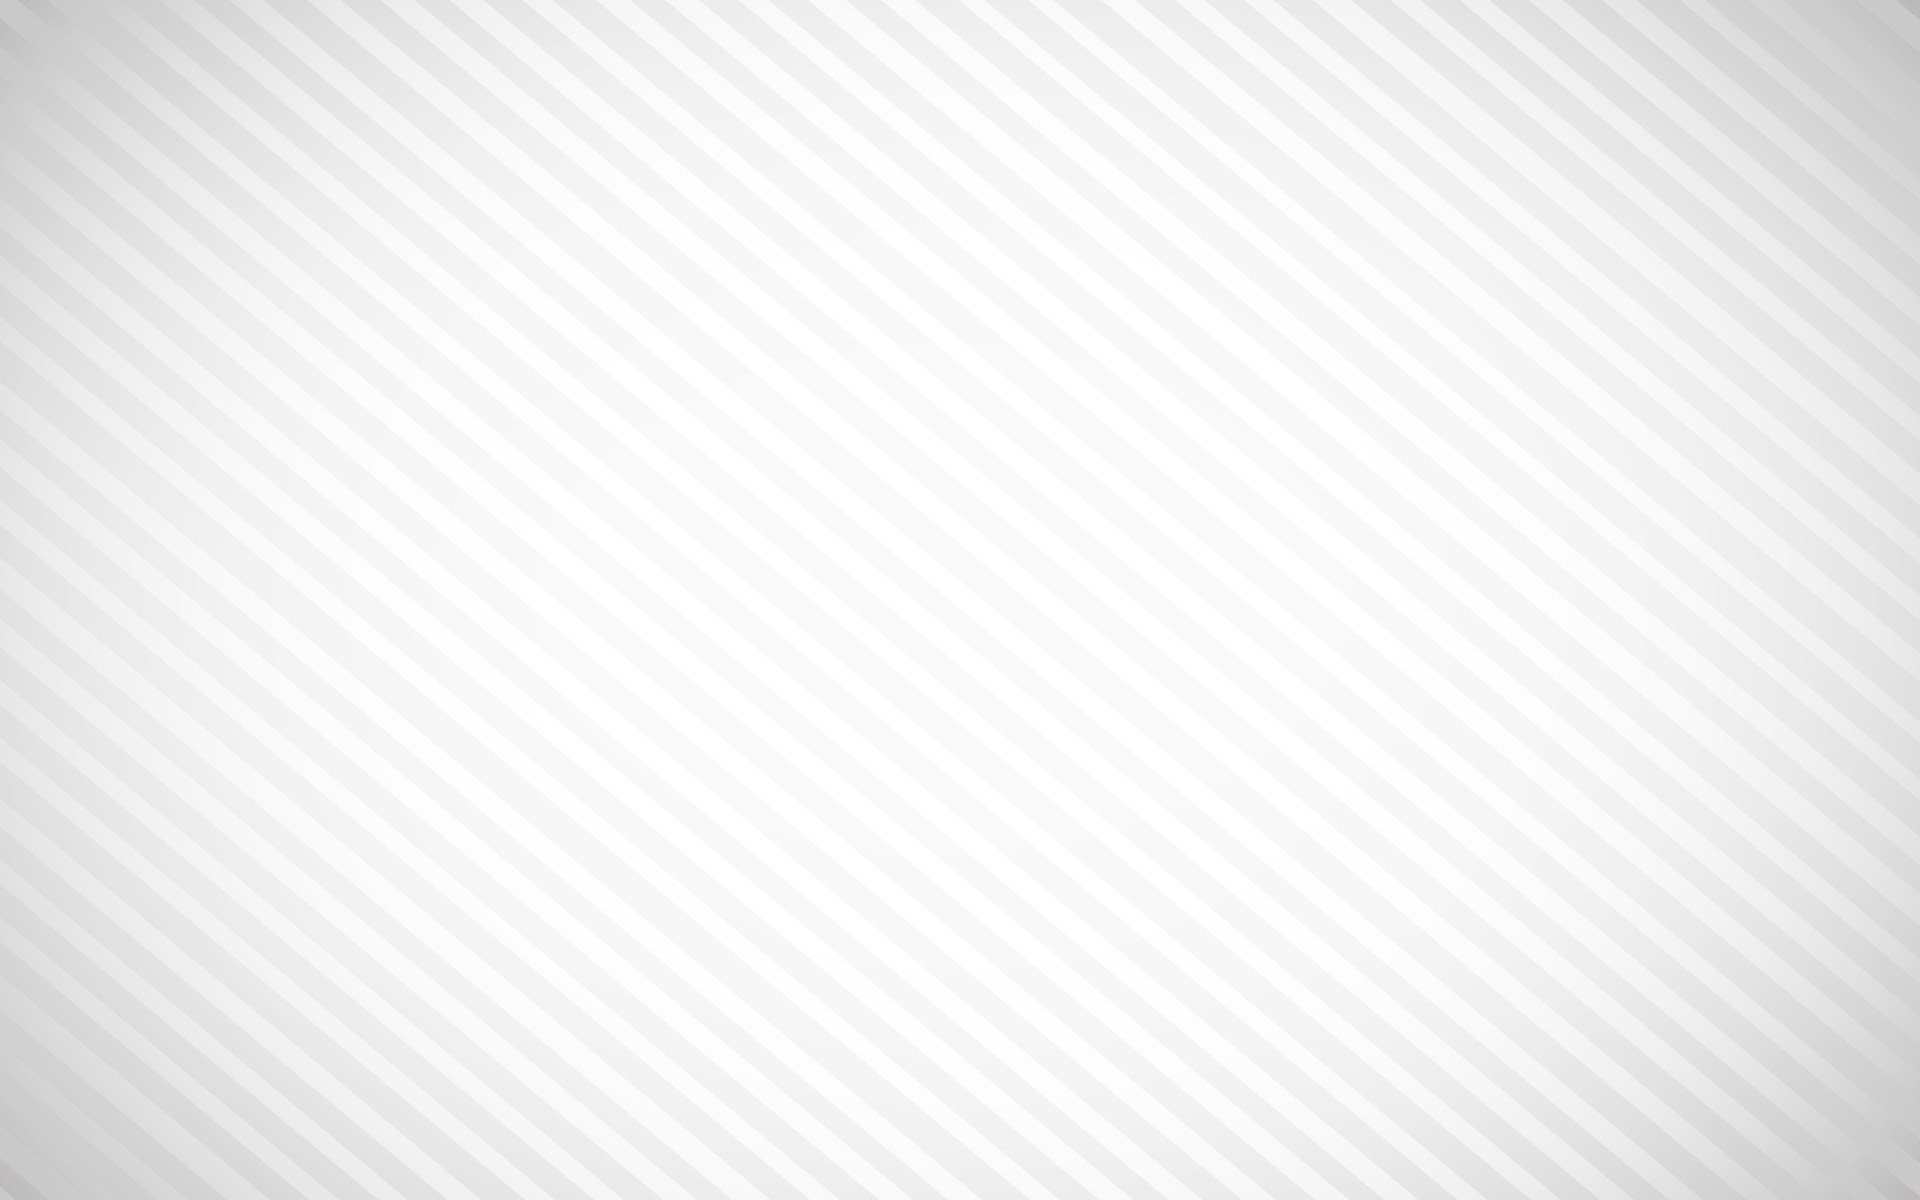 White background wallpaper wallpapertag - White abstract background hd ...